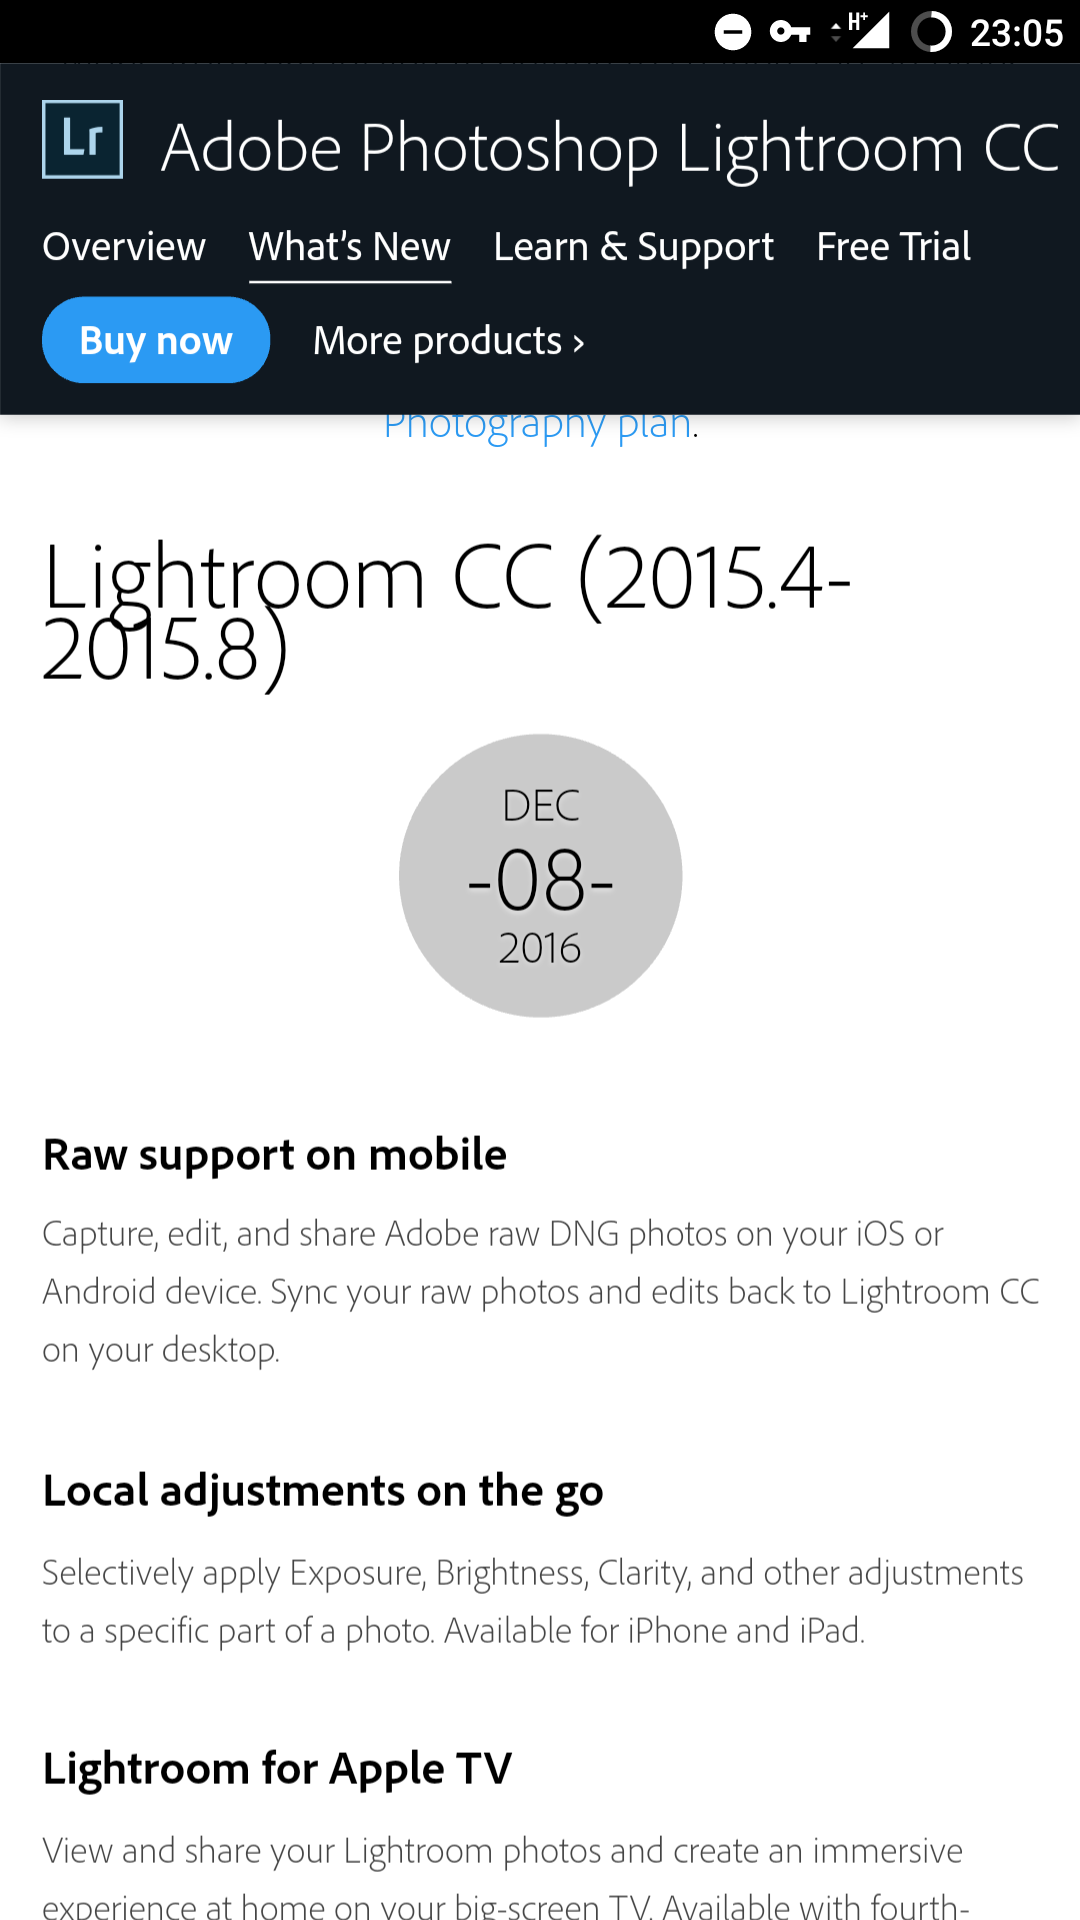 Lightroom 2015.8 is actually new